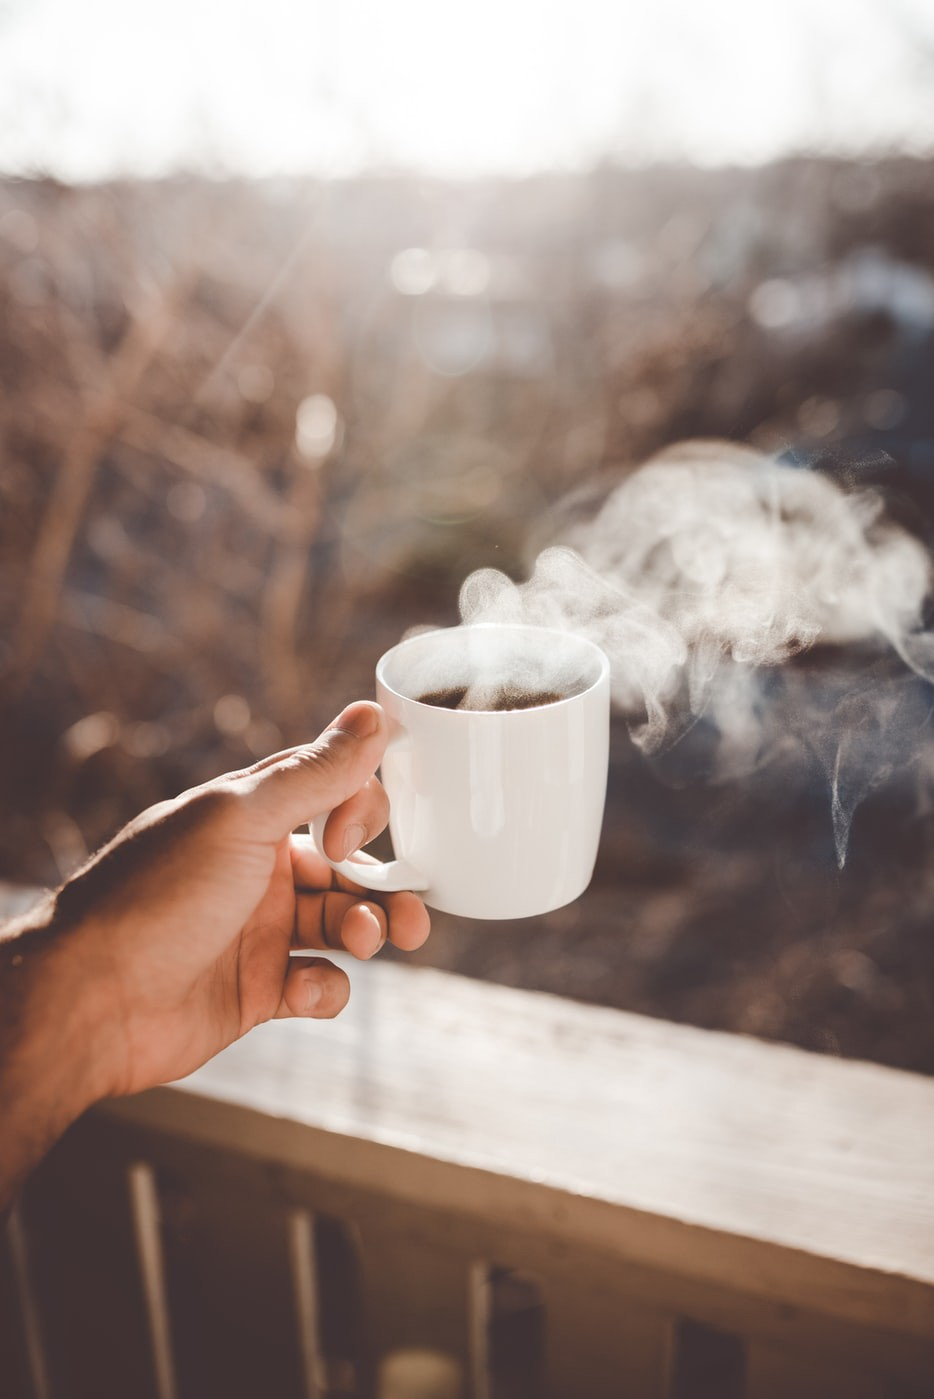 A hand holding a very hot coffee with lots of steam outside on the balcony